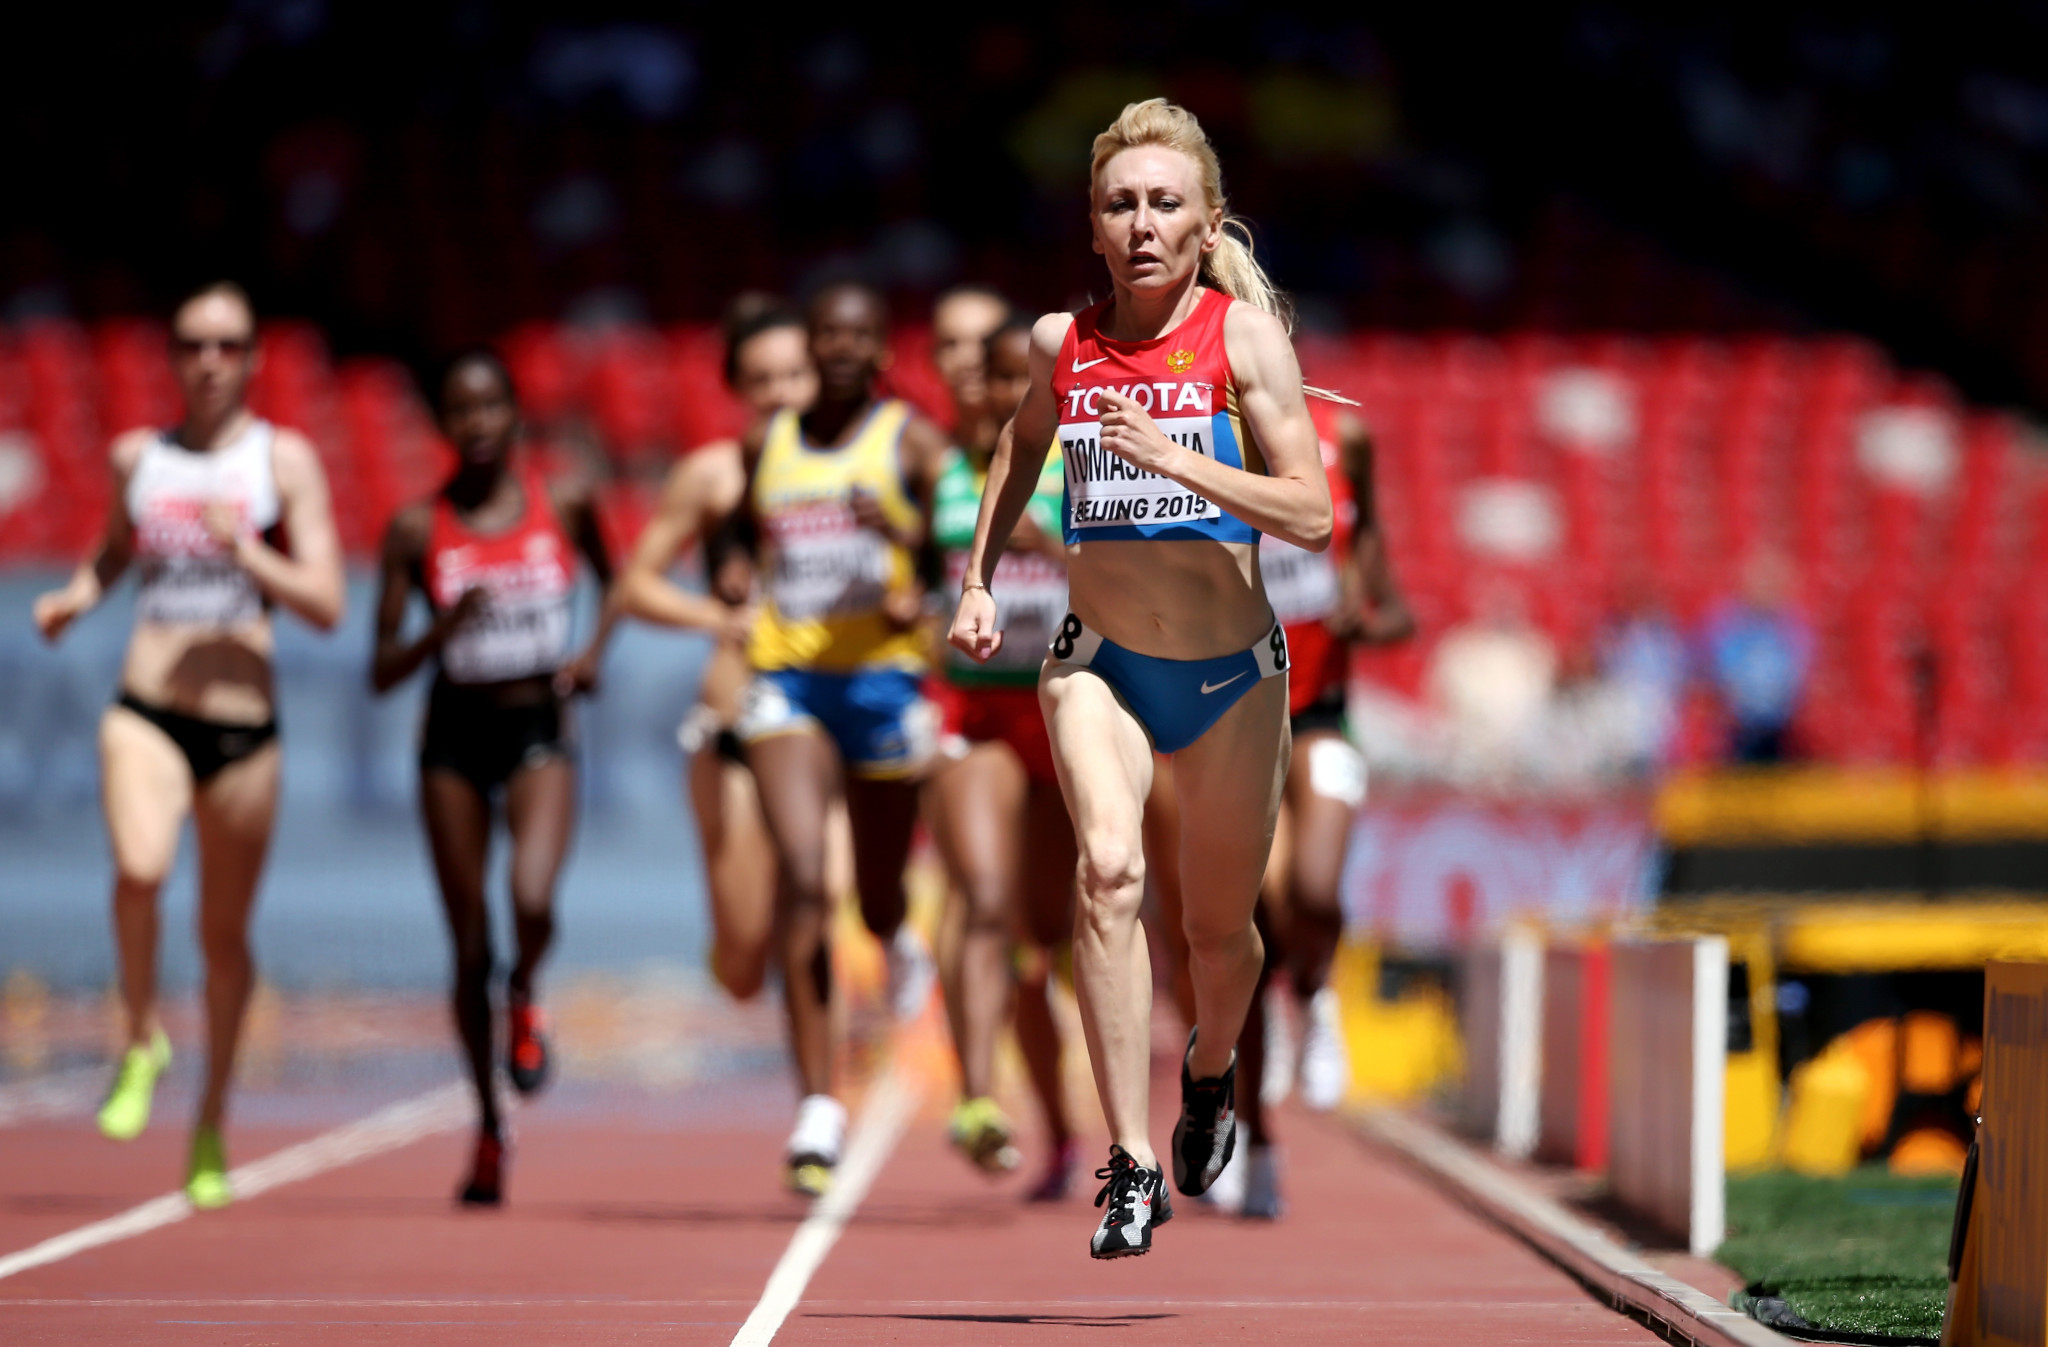 Tatyana Tomashova finished fourth in the 1,500m at London 2012 in a race considered among the dirtiest in history ©Getty Images